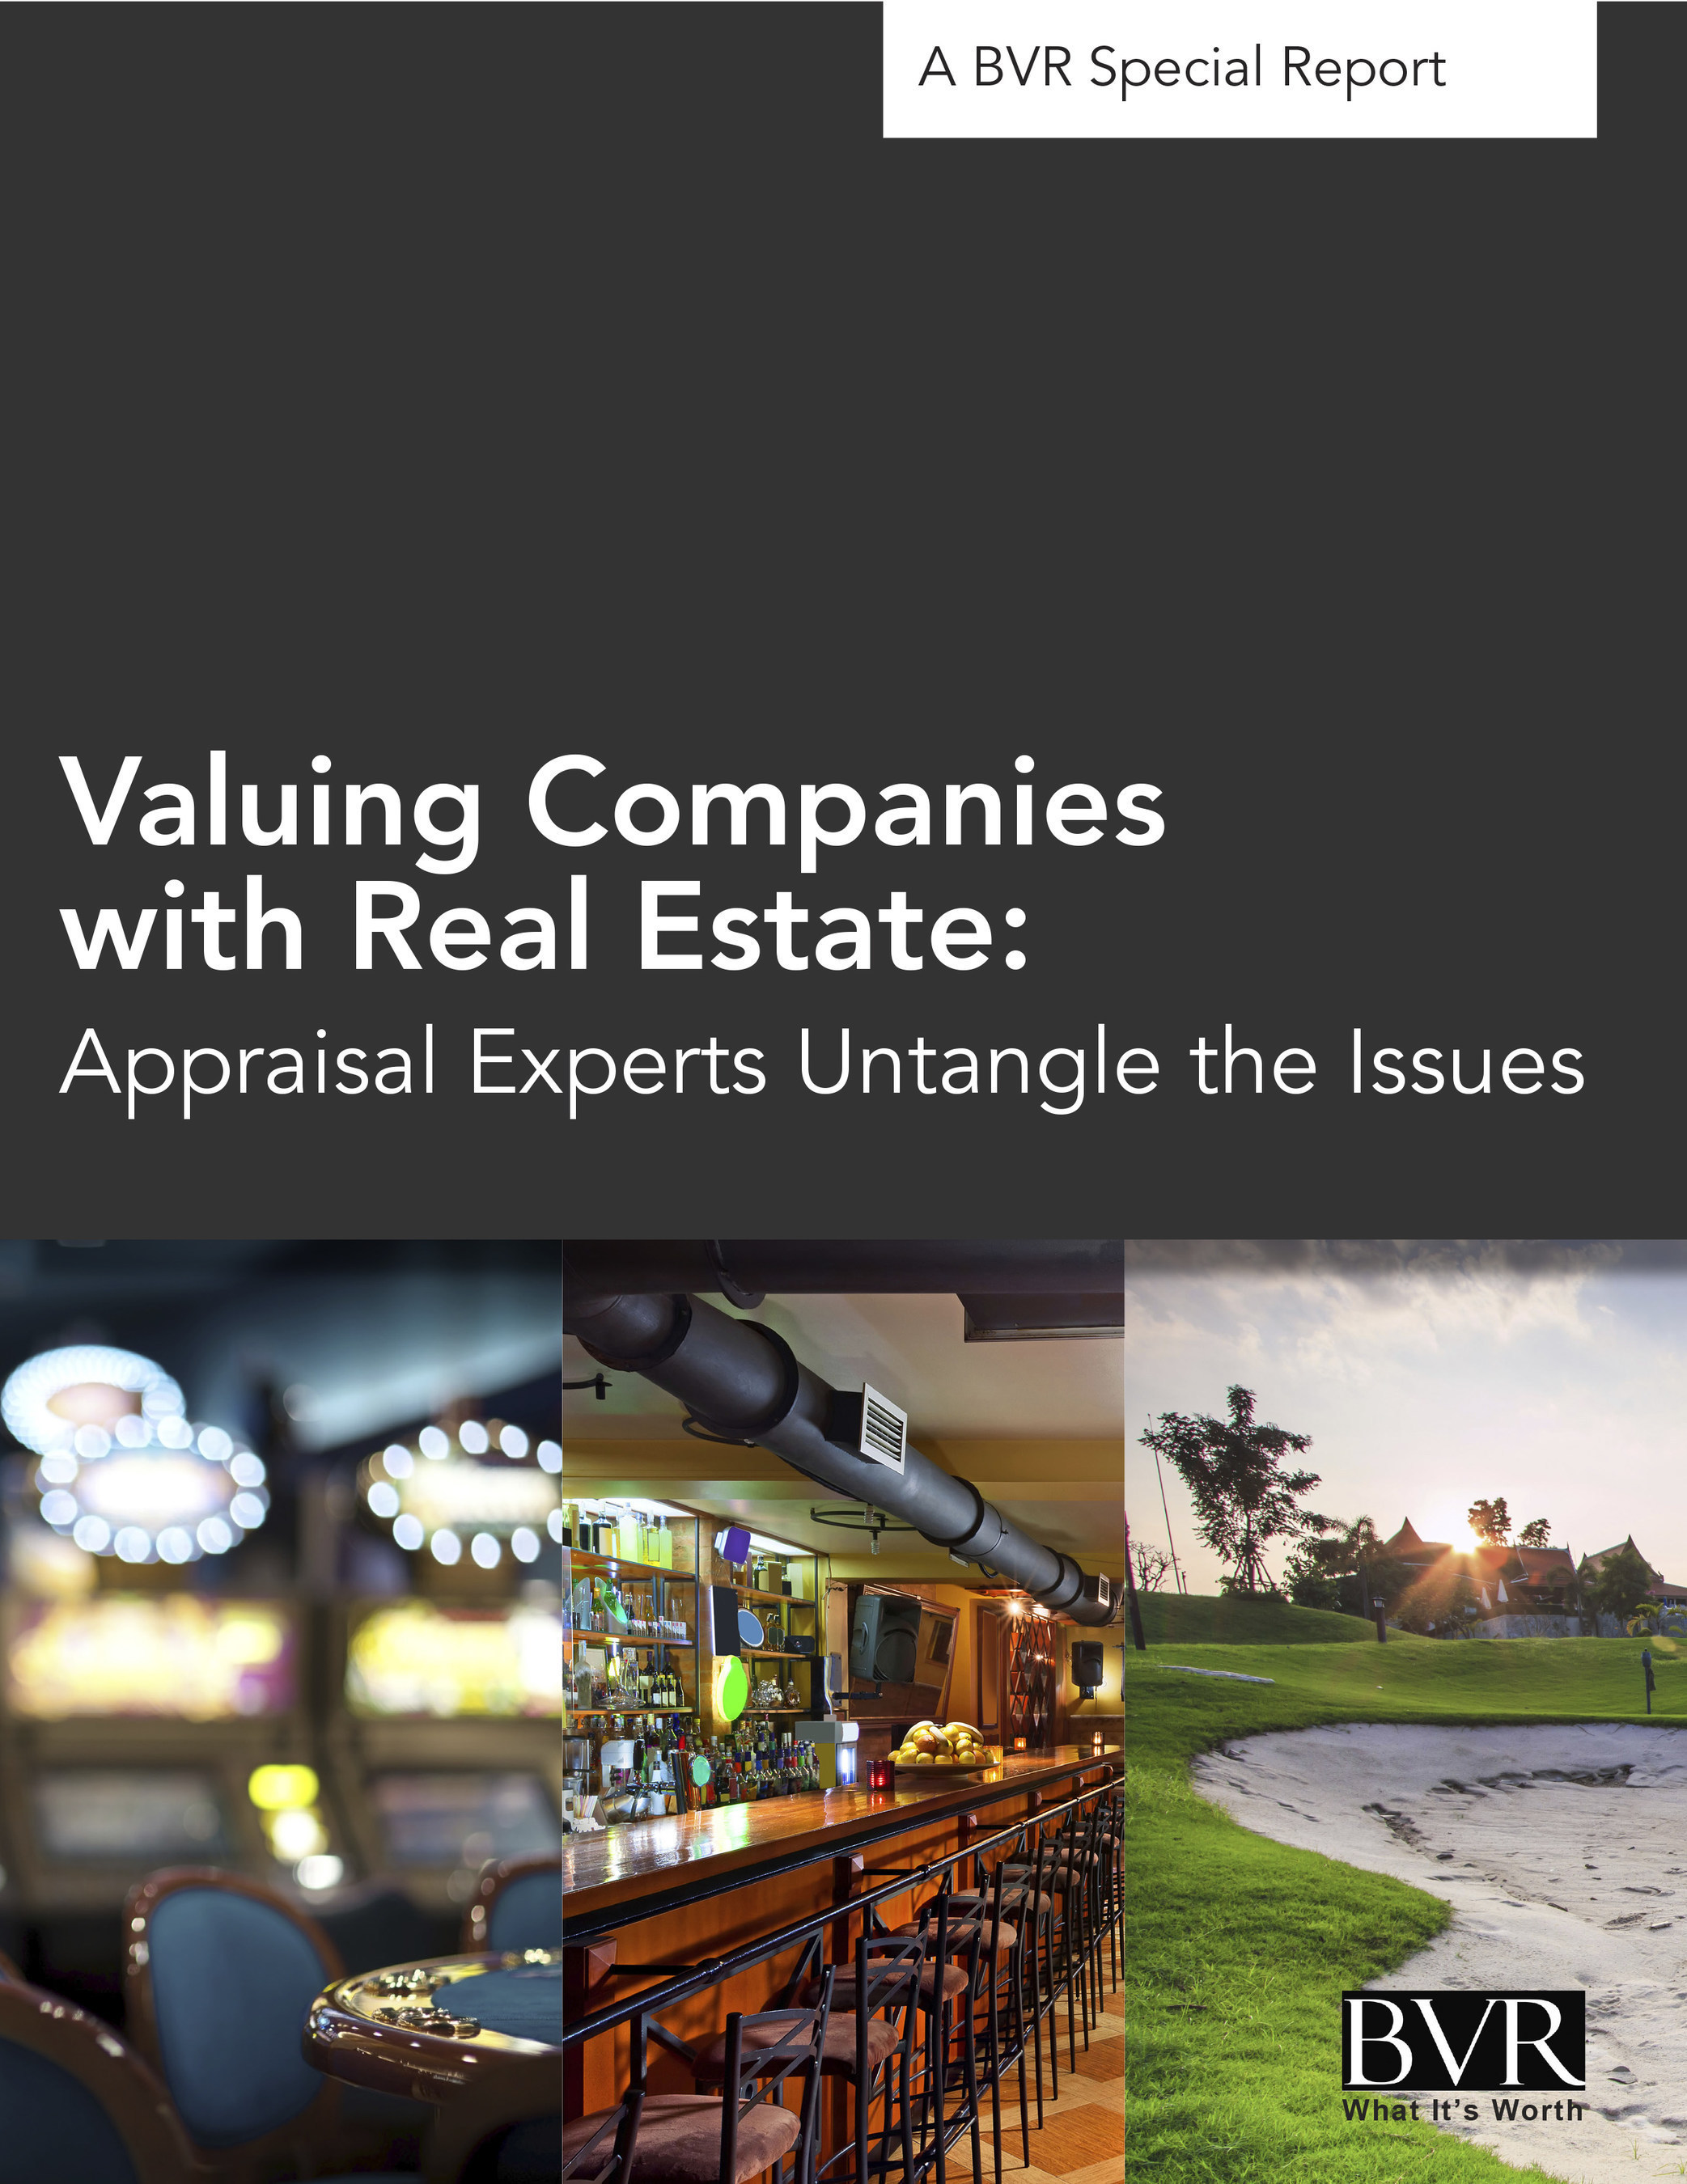 Valuing Companies with Real Estate: Appraisal Experts Untangle the Issues